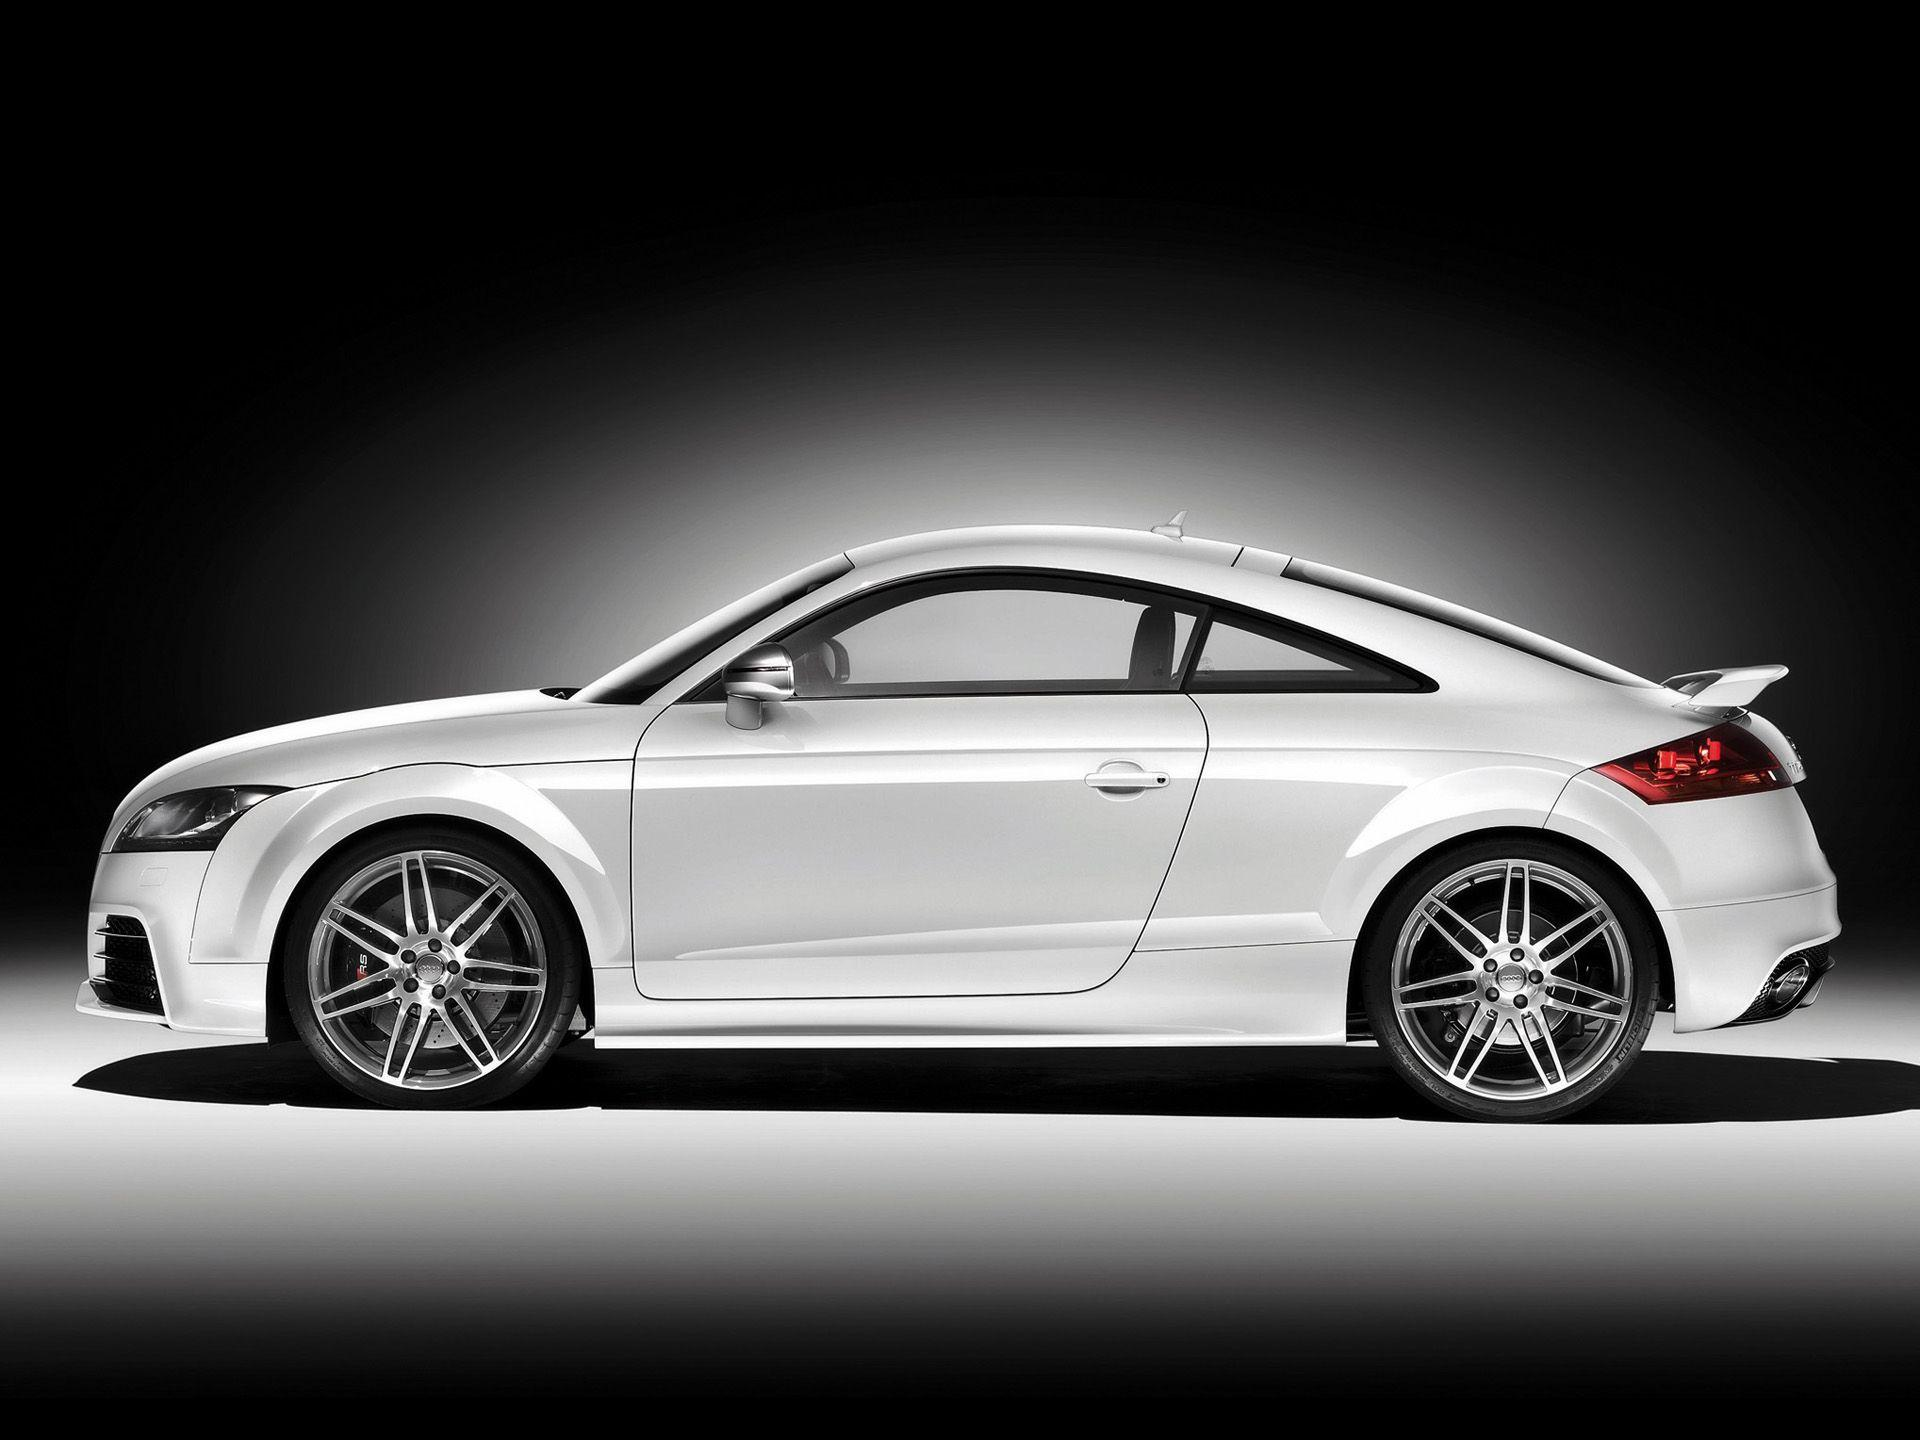 Audi TT RS side wallpapers | Audi TT RS side stock photos